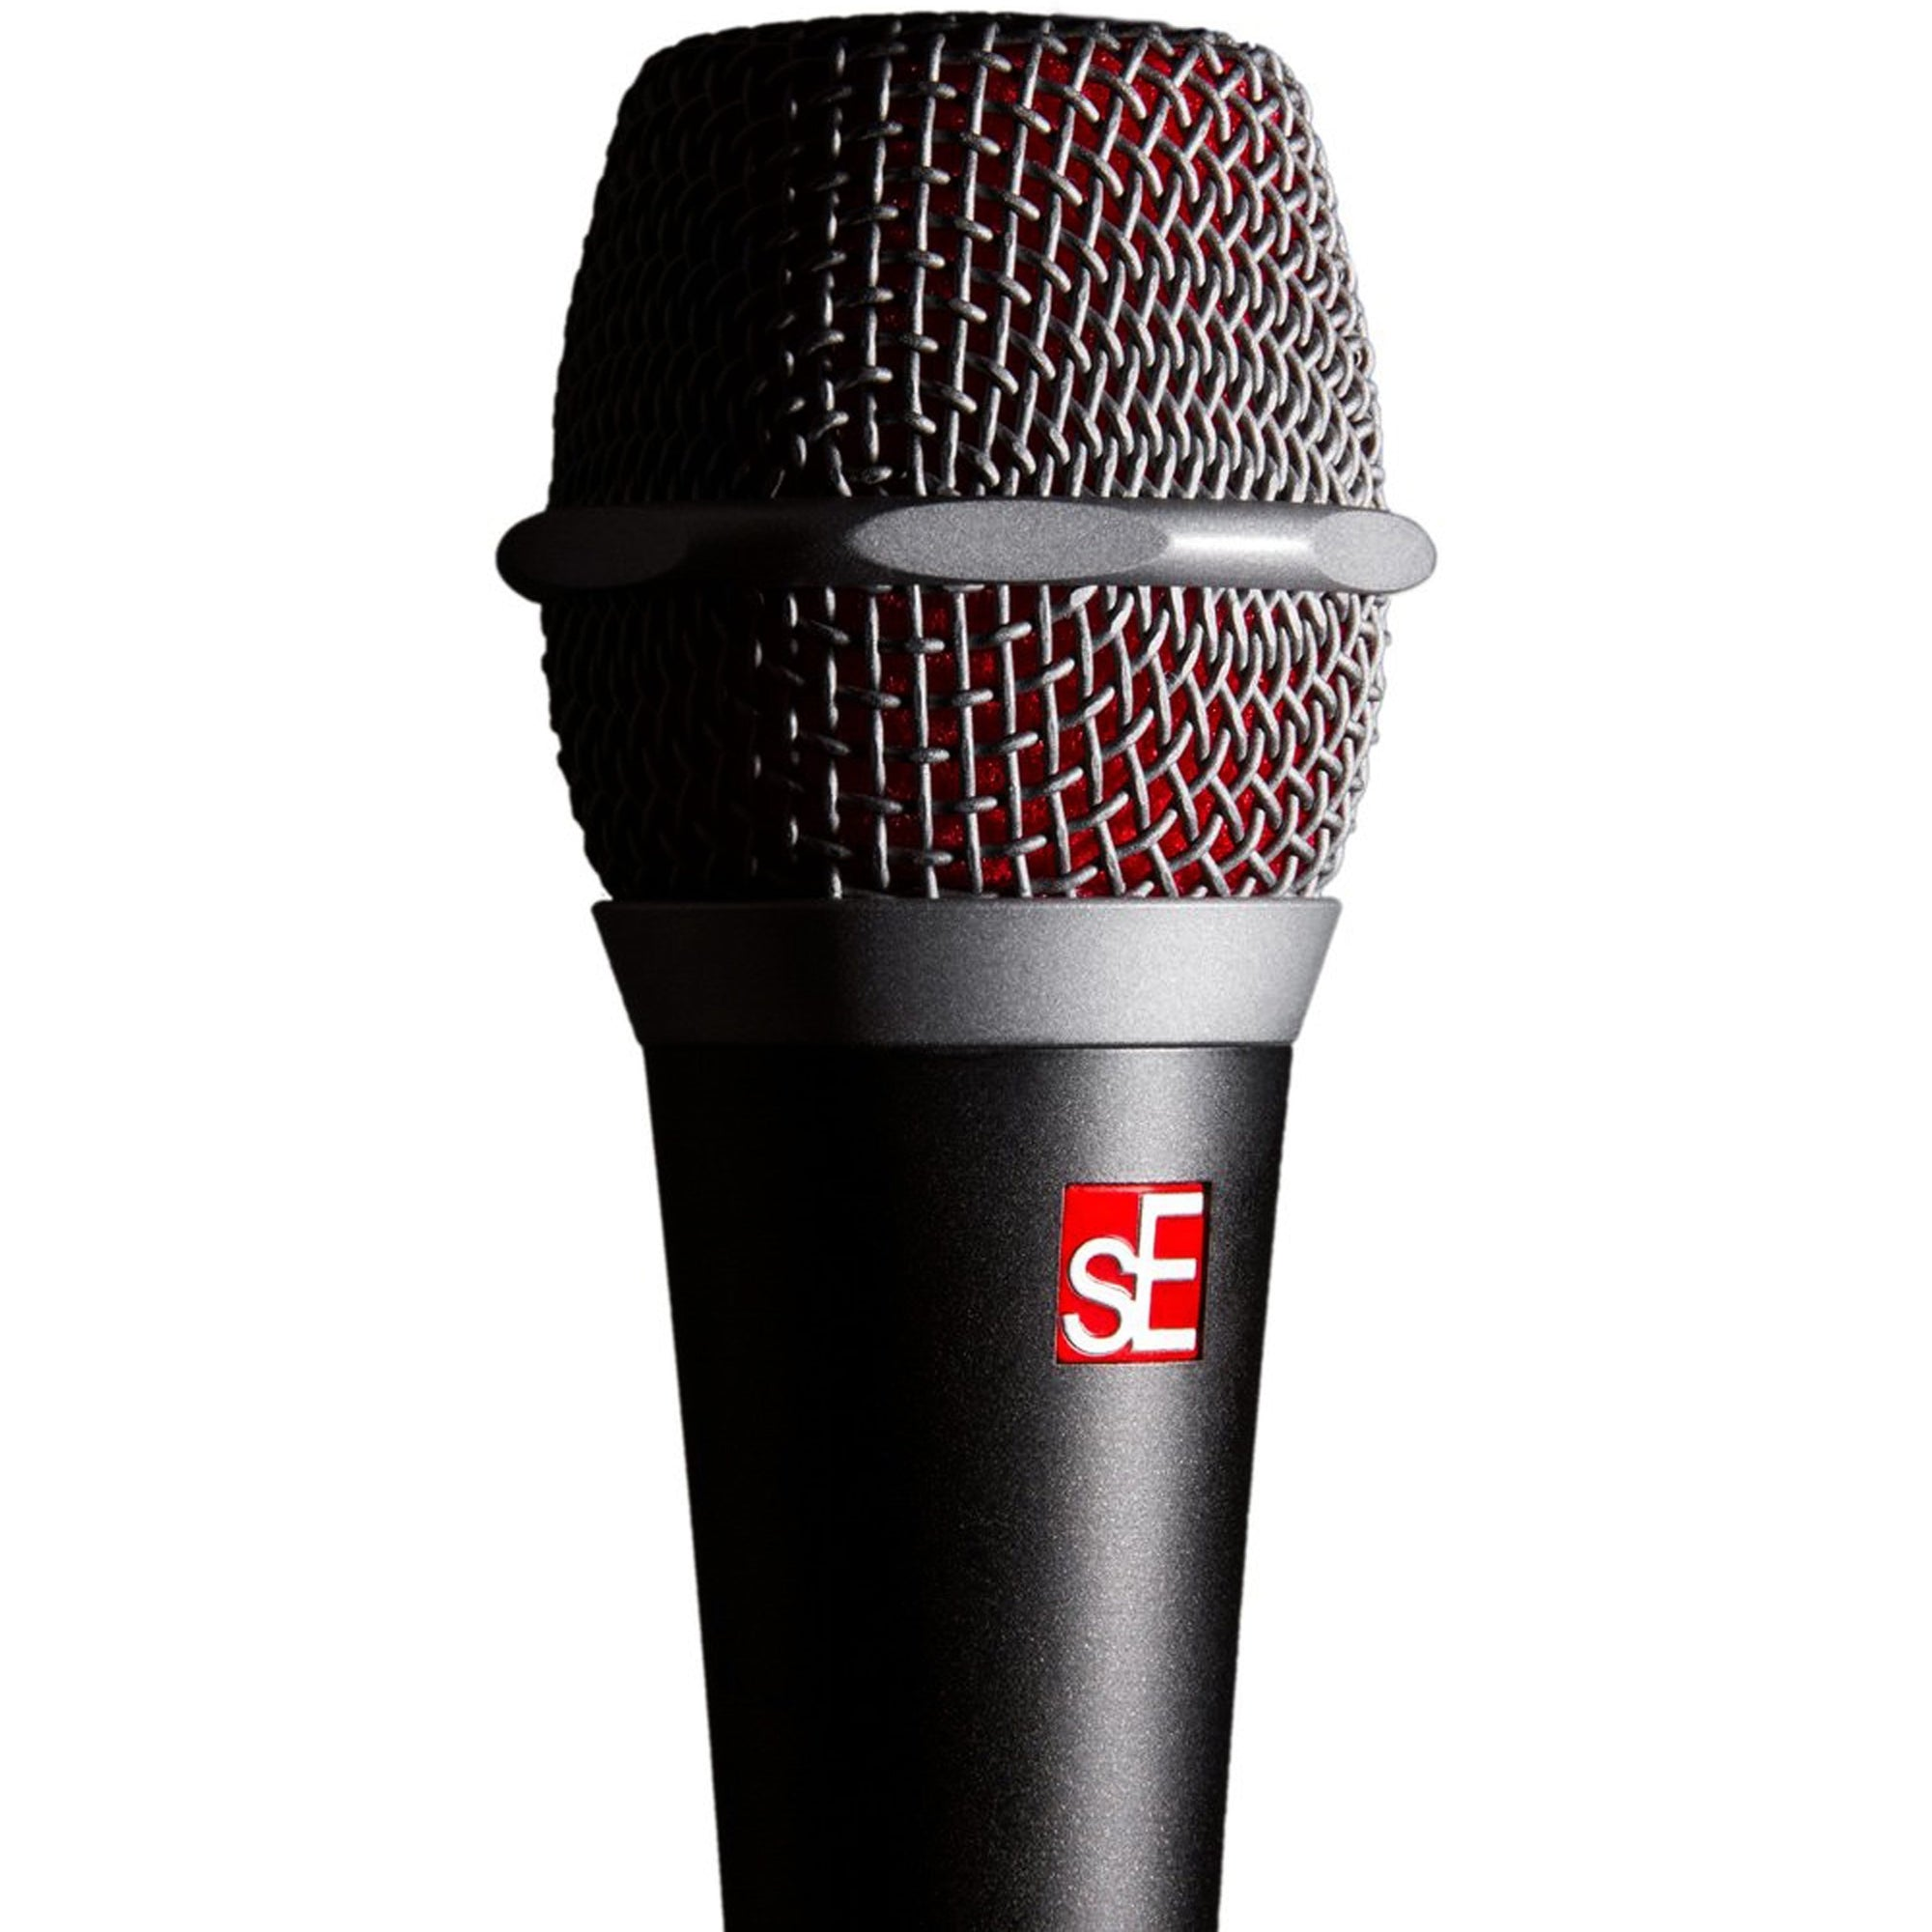 SE Electronics V7 Handheld Supercardioid Dynamic Vocal Microphone